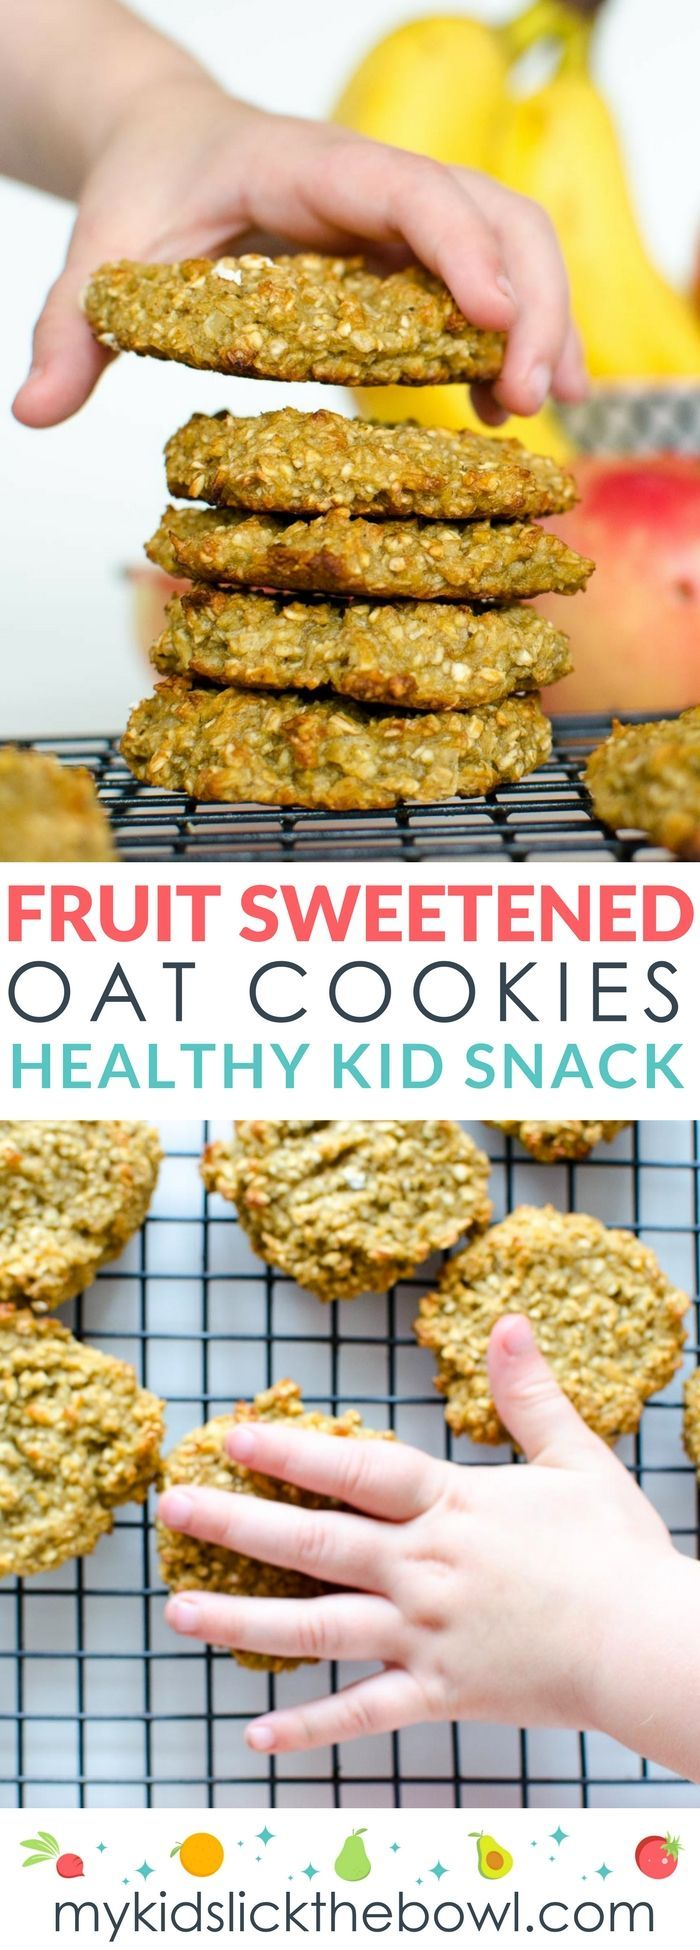 Fruit sweetened cookies, an easy healthy recipe, made with banana, applesauce and oatmeal,  kid-friendly, wheat free nut free and dairy free